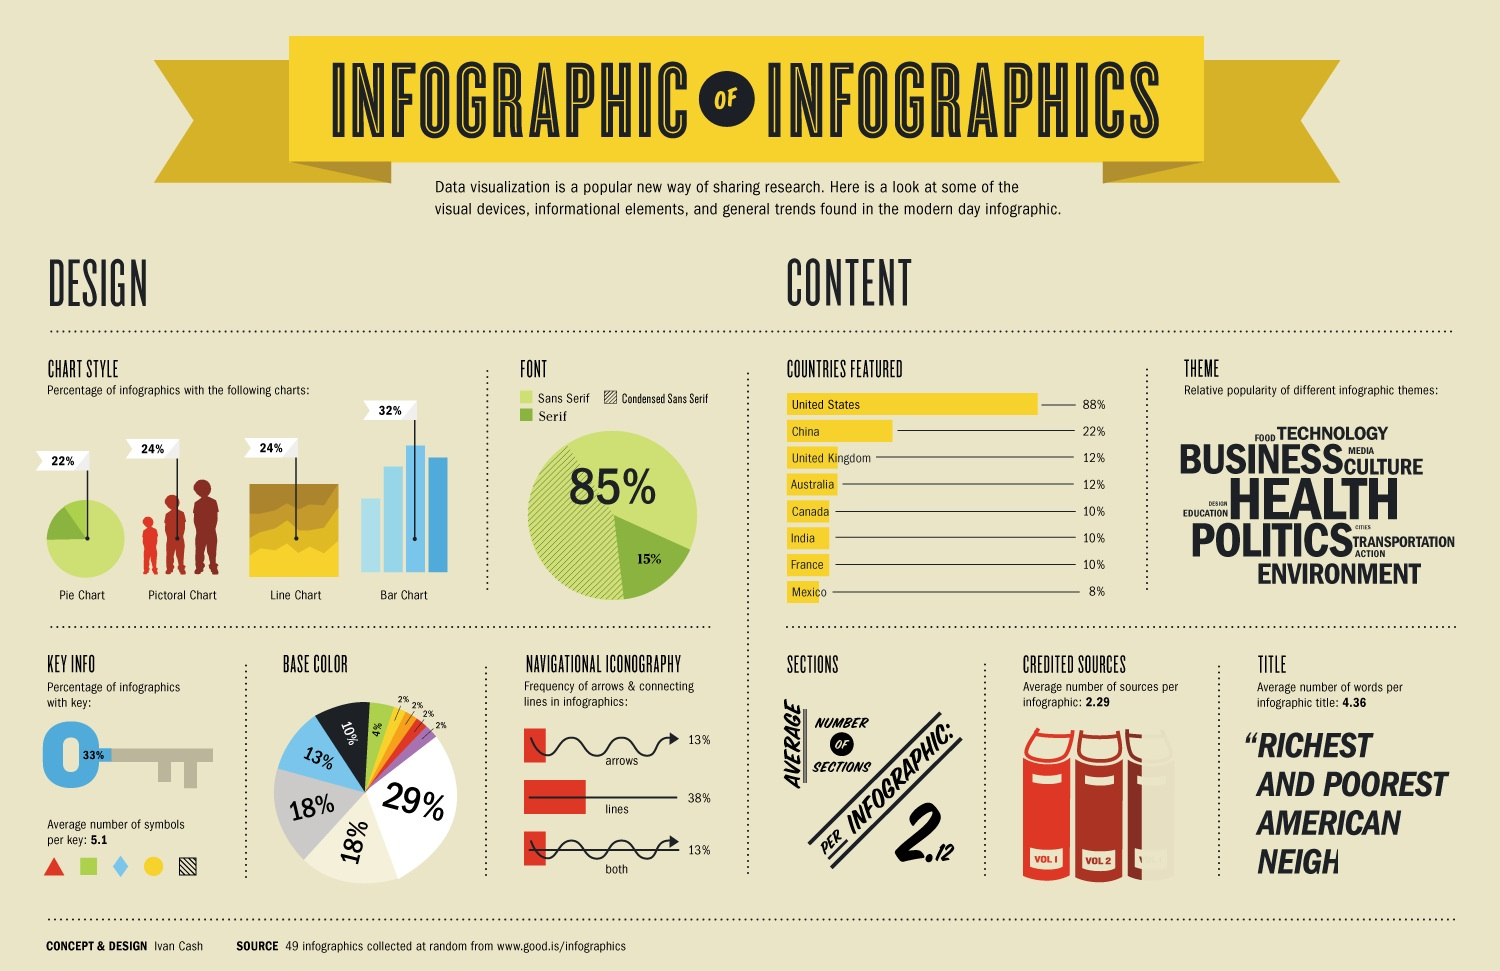 Forget the [Infographic]